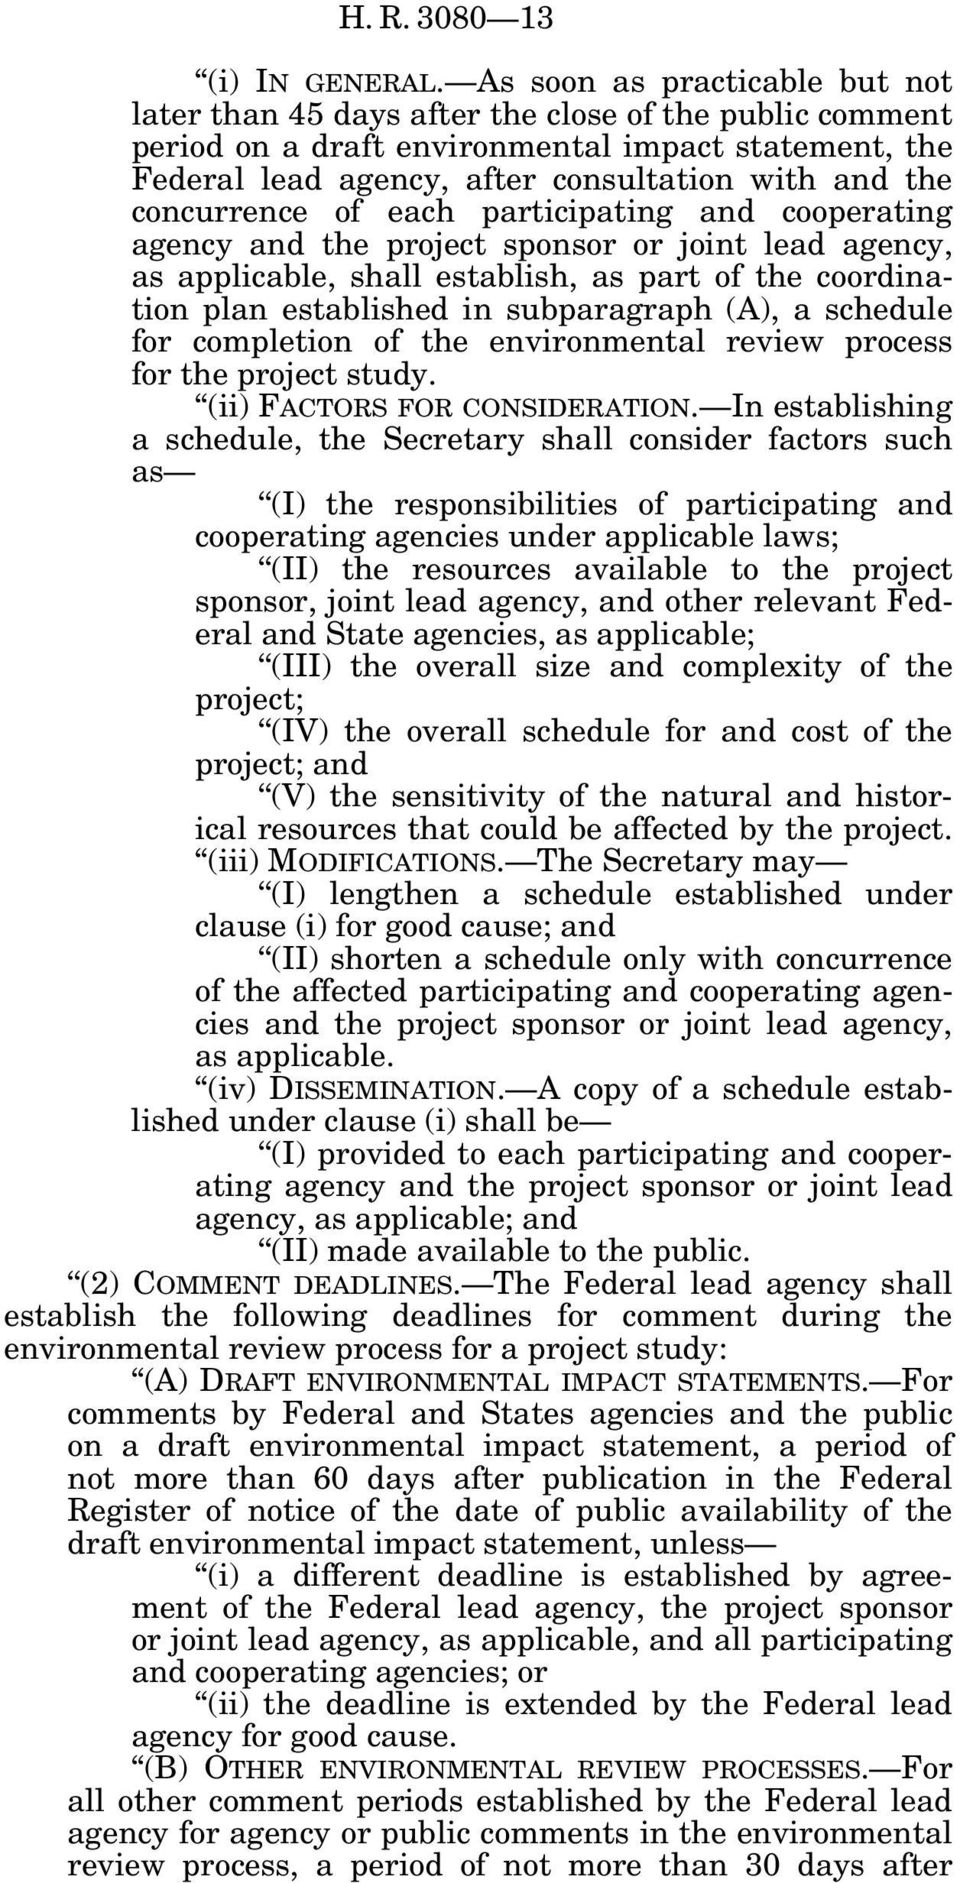 concurrence of each participating and cooperating agency and the project sponsor or joint lead agency, as applicable, shall establish, as part of the coordination plan established in subparagraph